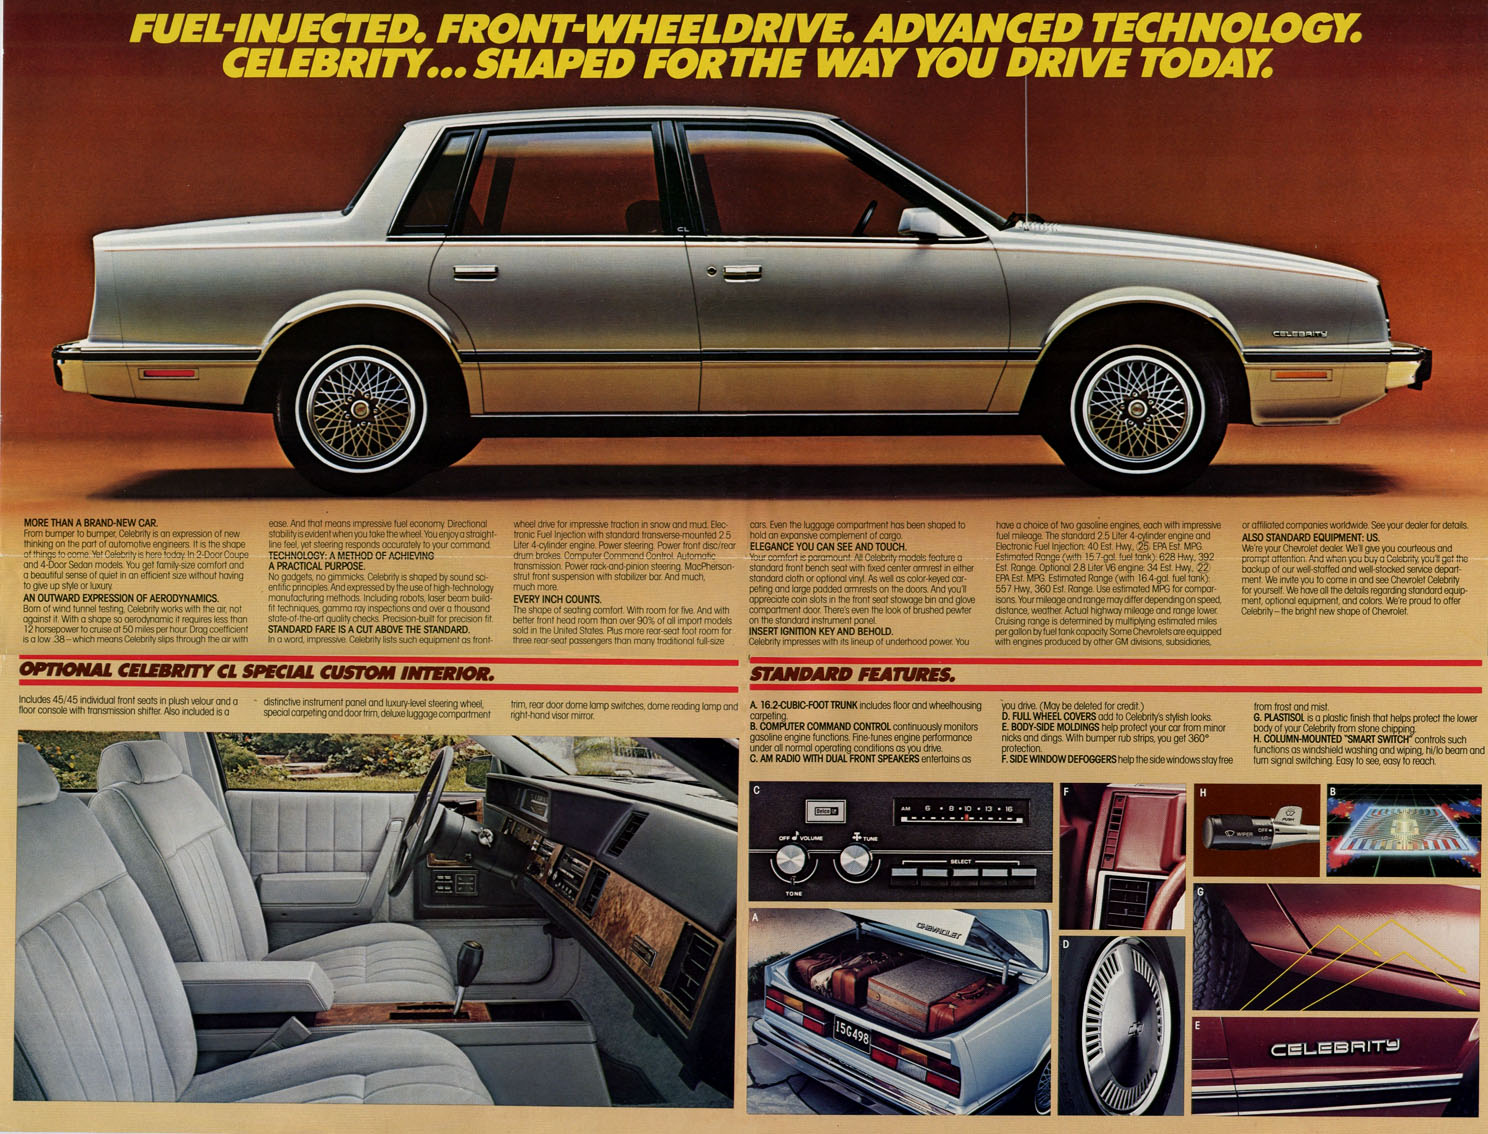 1982 Chevy Celebrity Commercial - YouTube